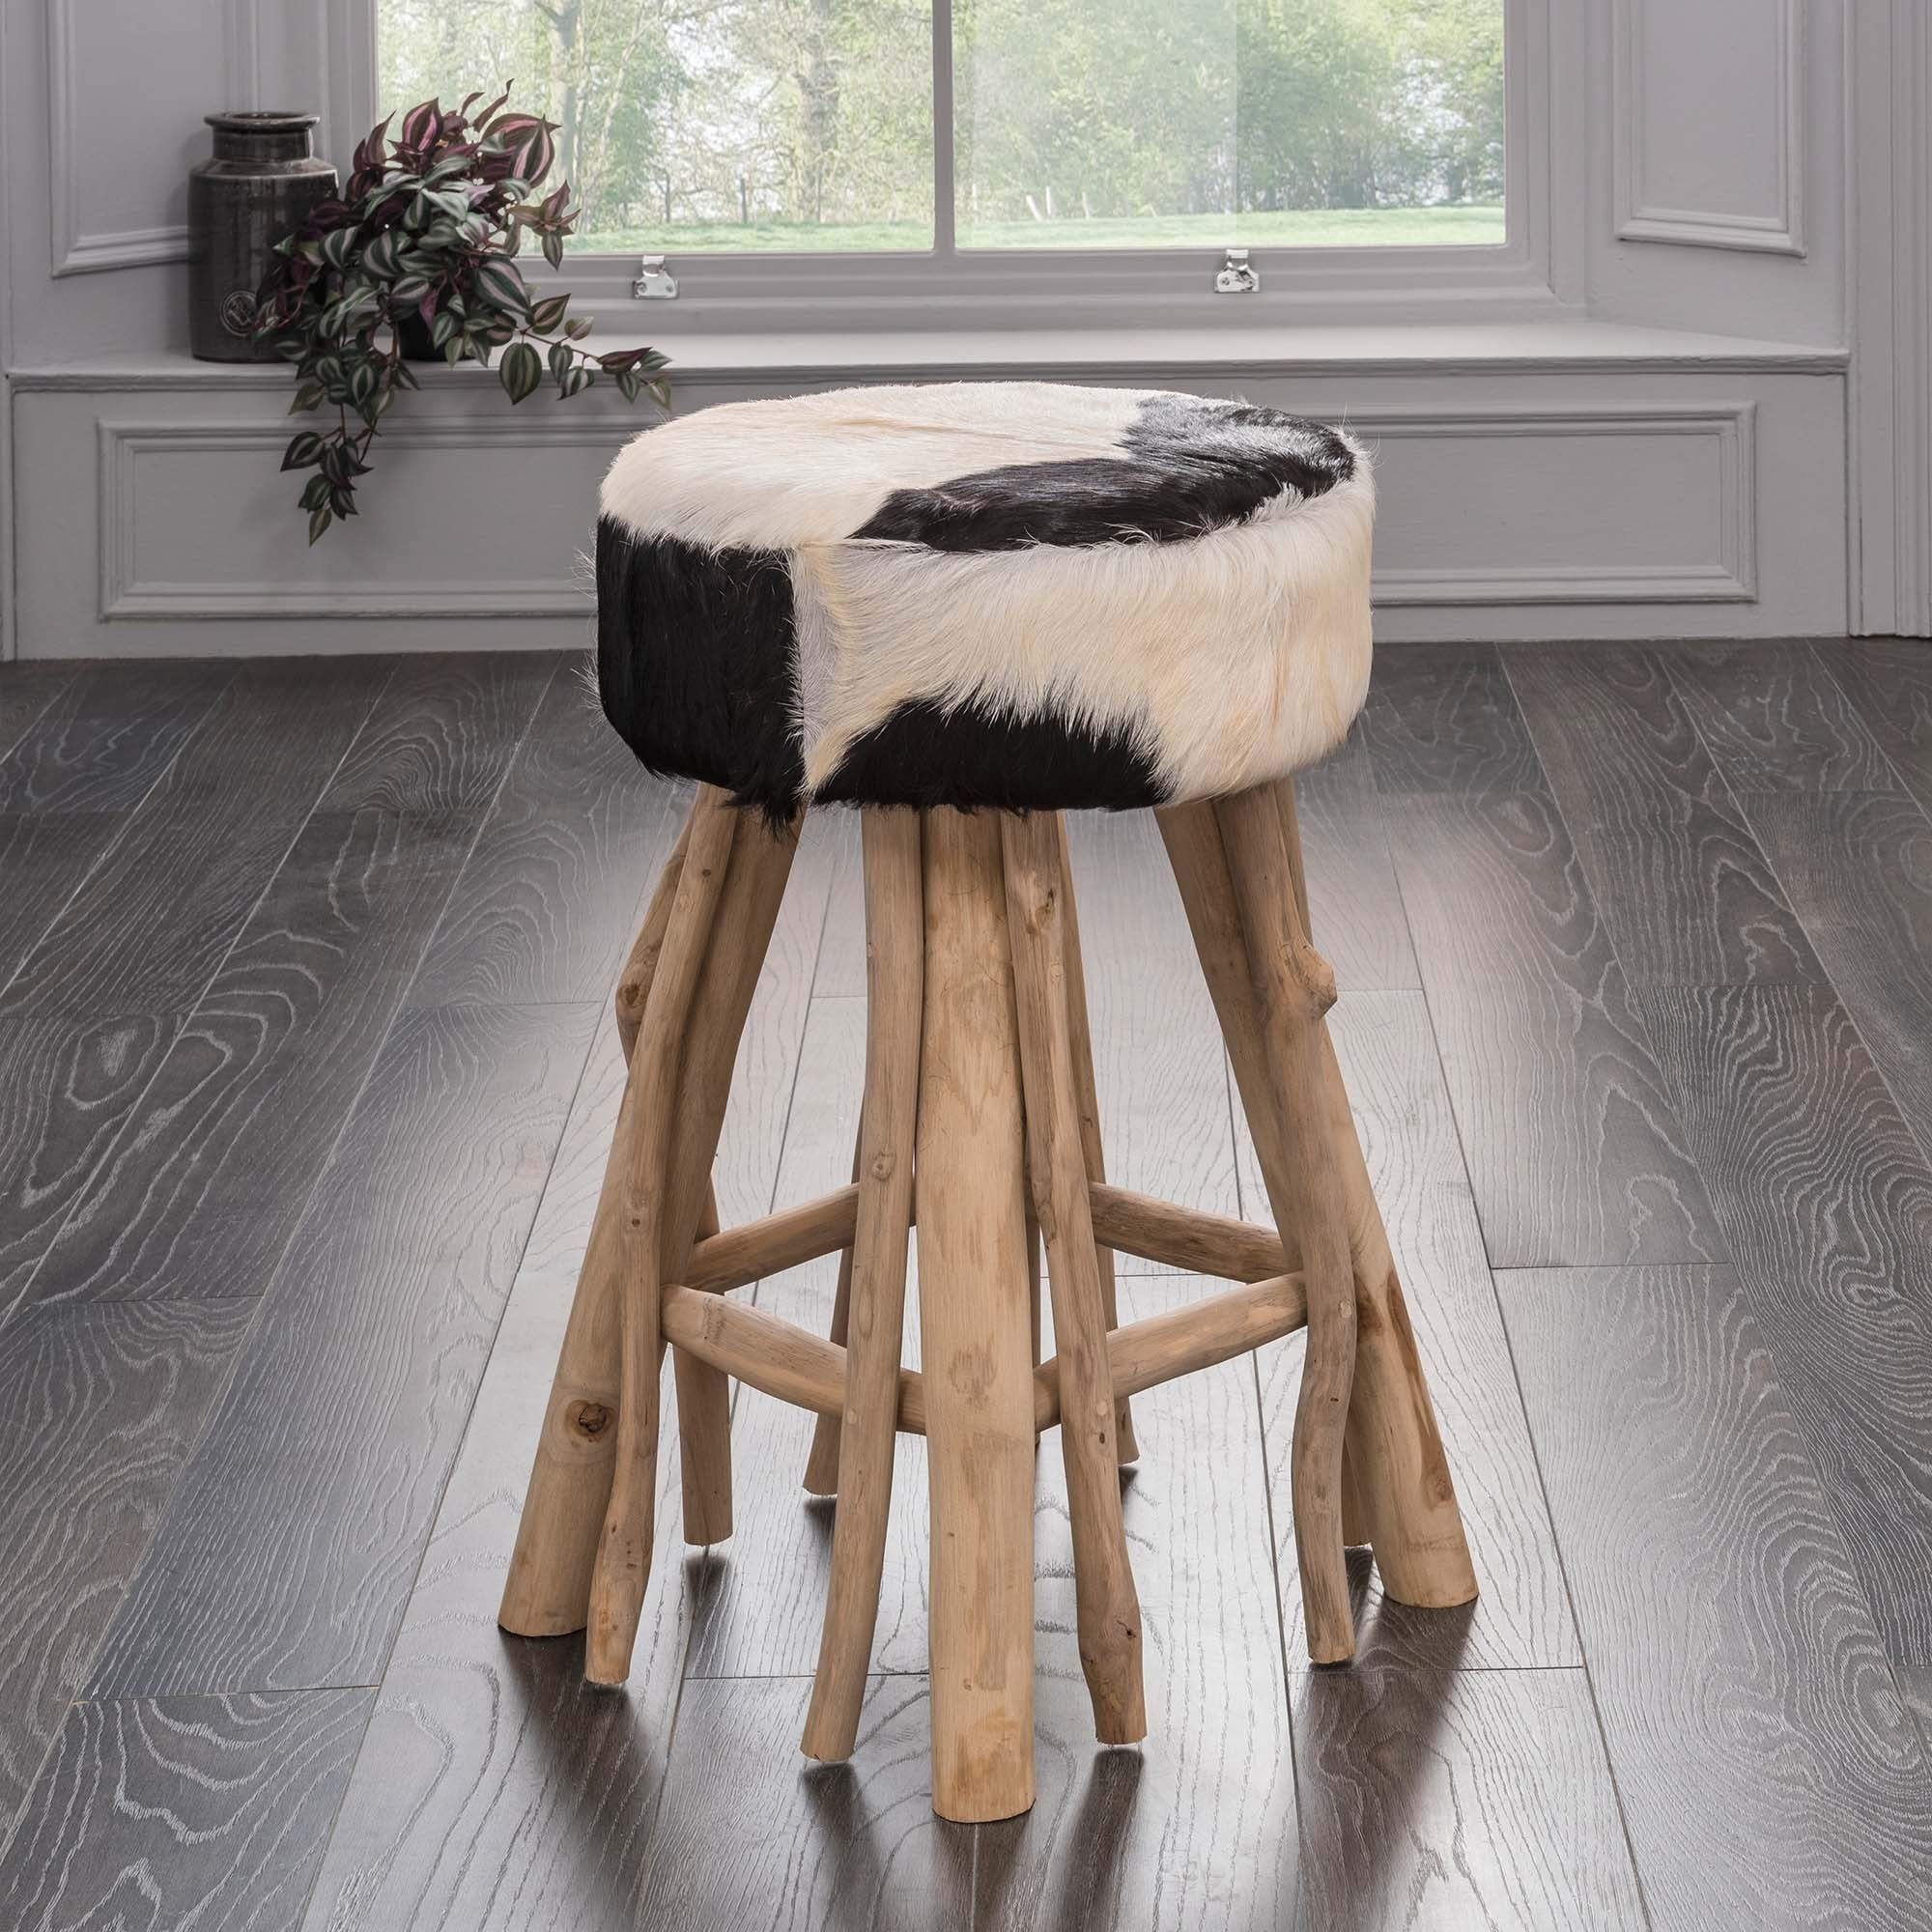 Cowhide Furniture - Have You Got It In Your Home Yet?